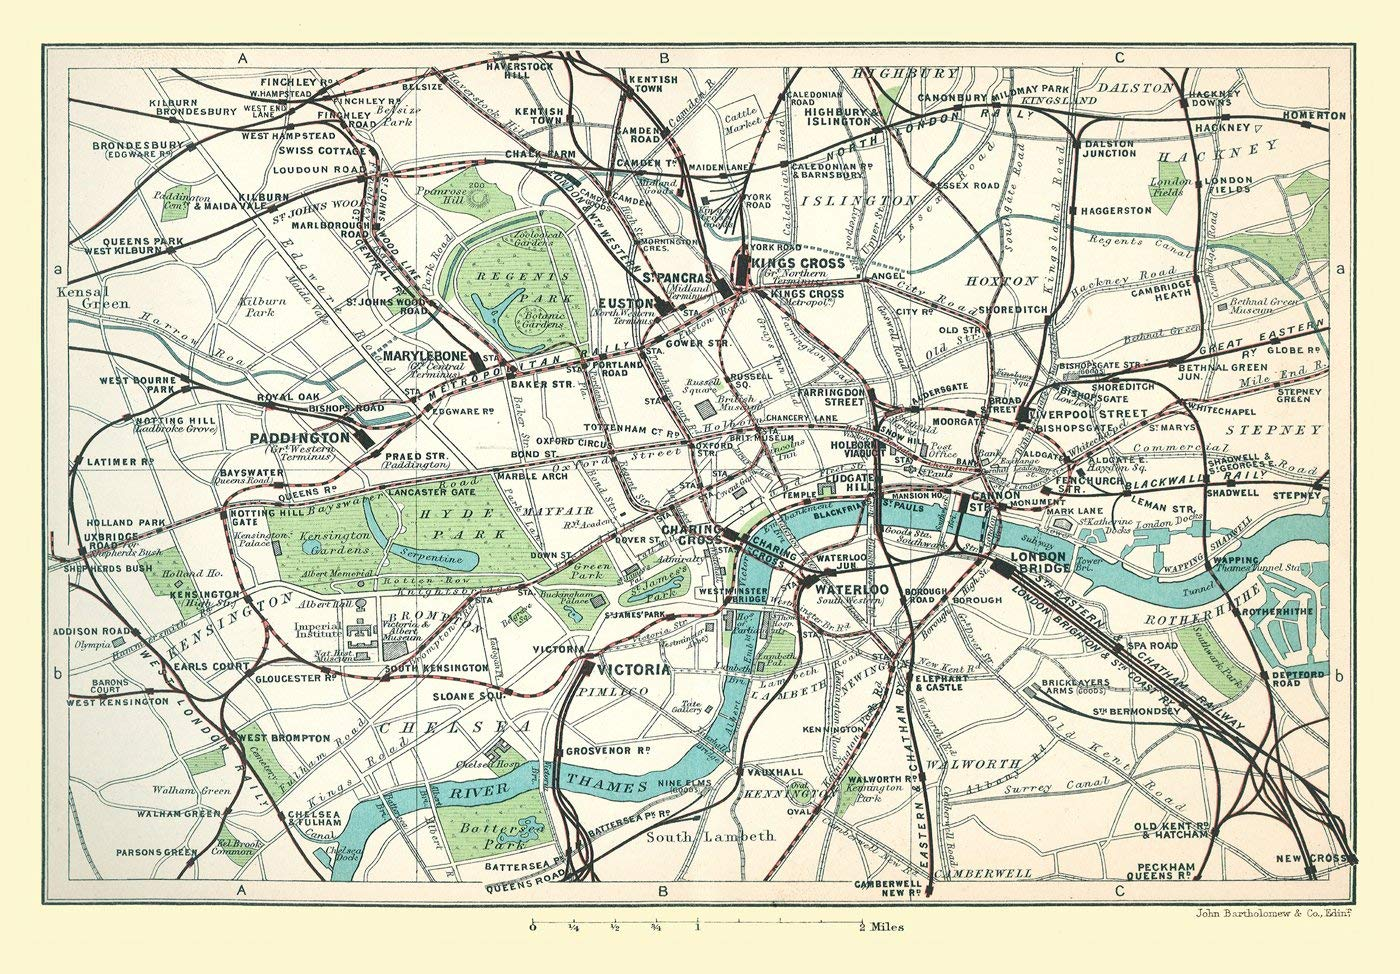 Map Of Central London To Print.Railway Map Of Central London 1908 1000 Piece Jigsaw Puzzle Jhg